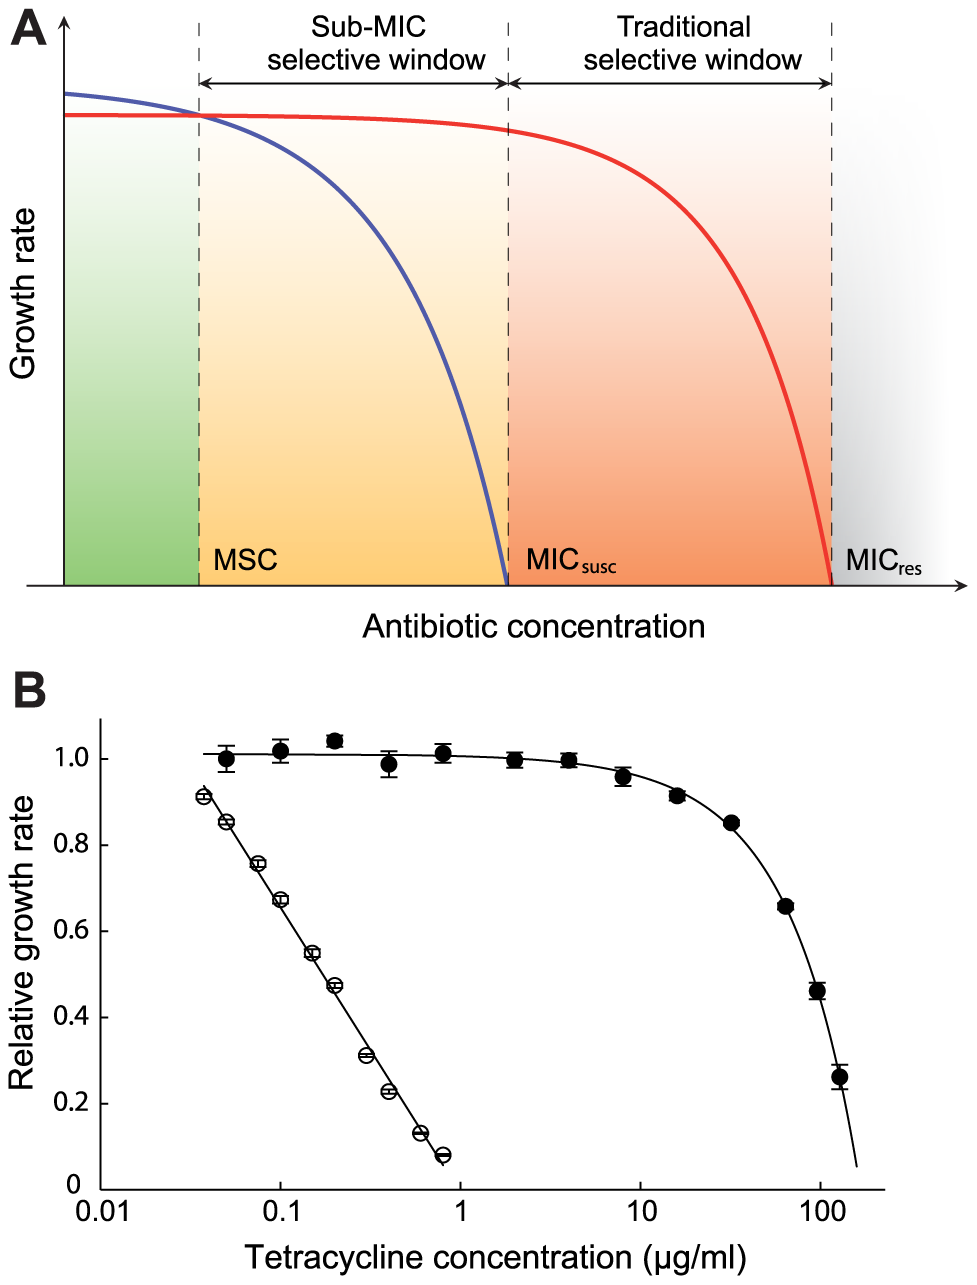 Growth rates as a function of antibiotic concentration.